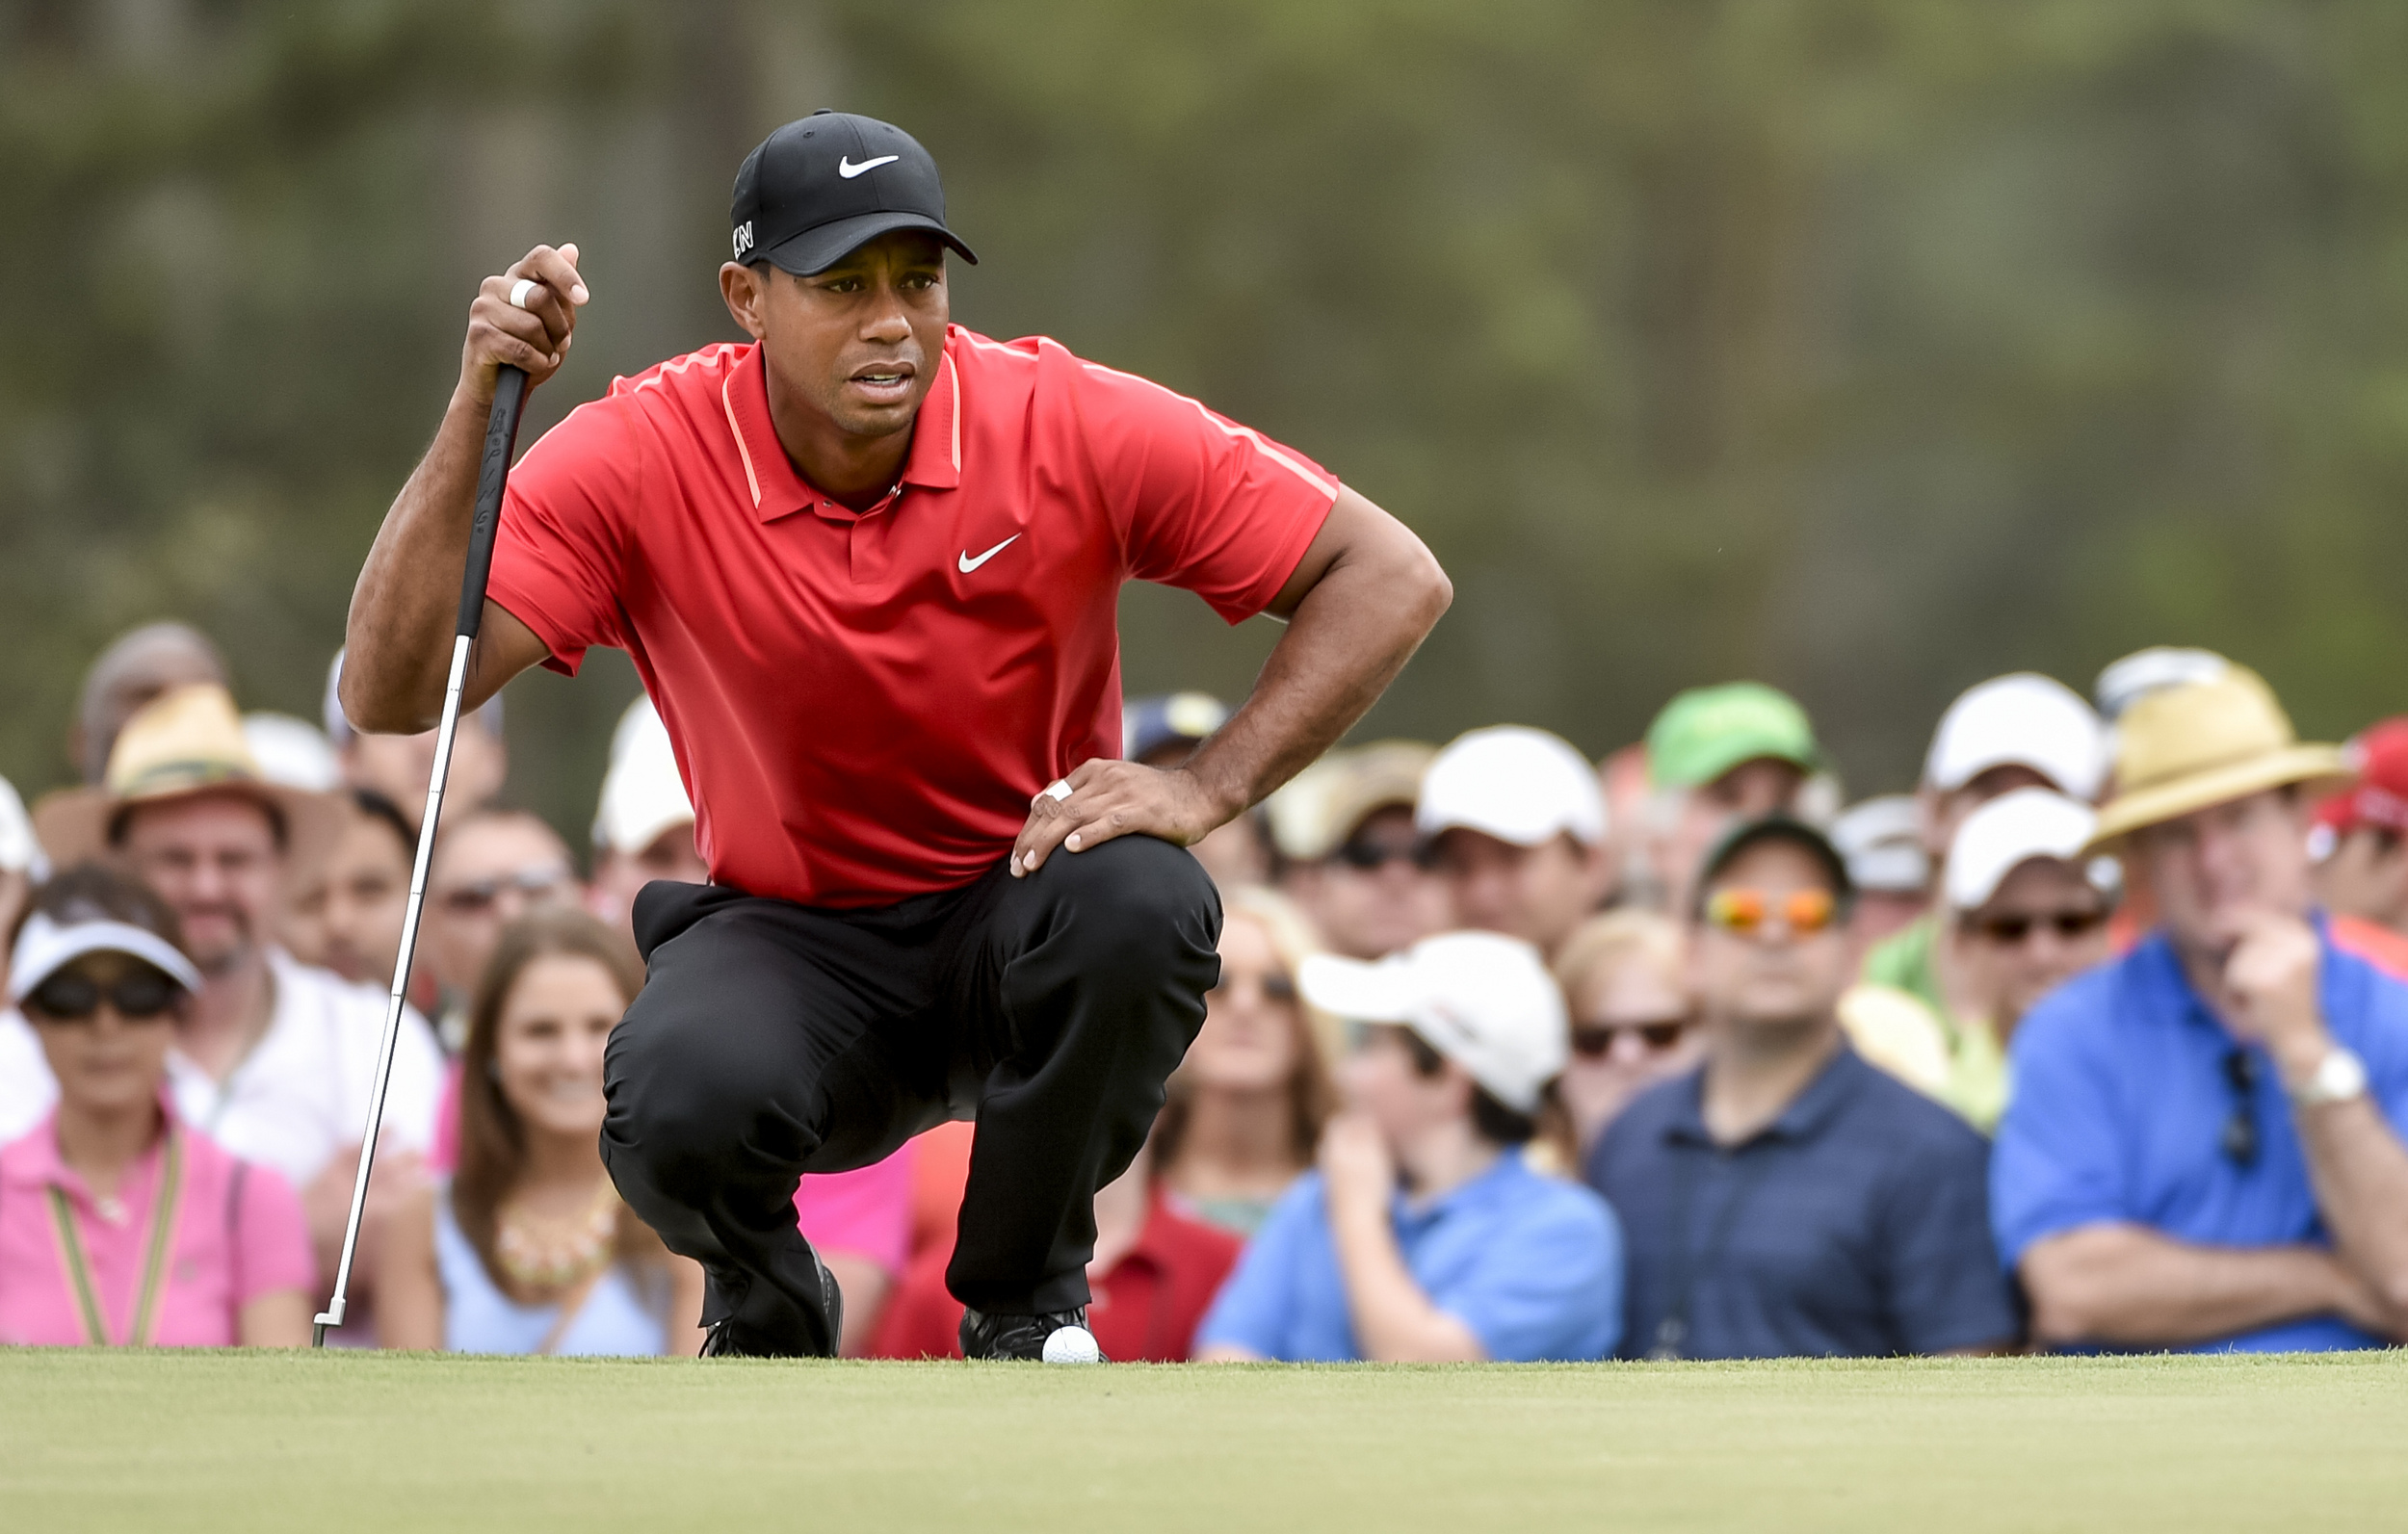 At long last, Tiger Woods eagerly returns to Masters